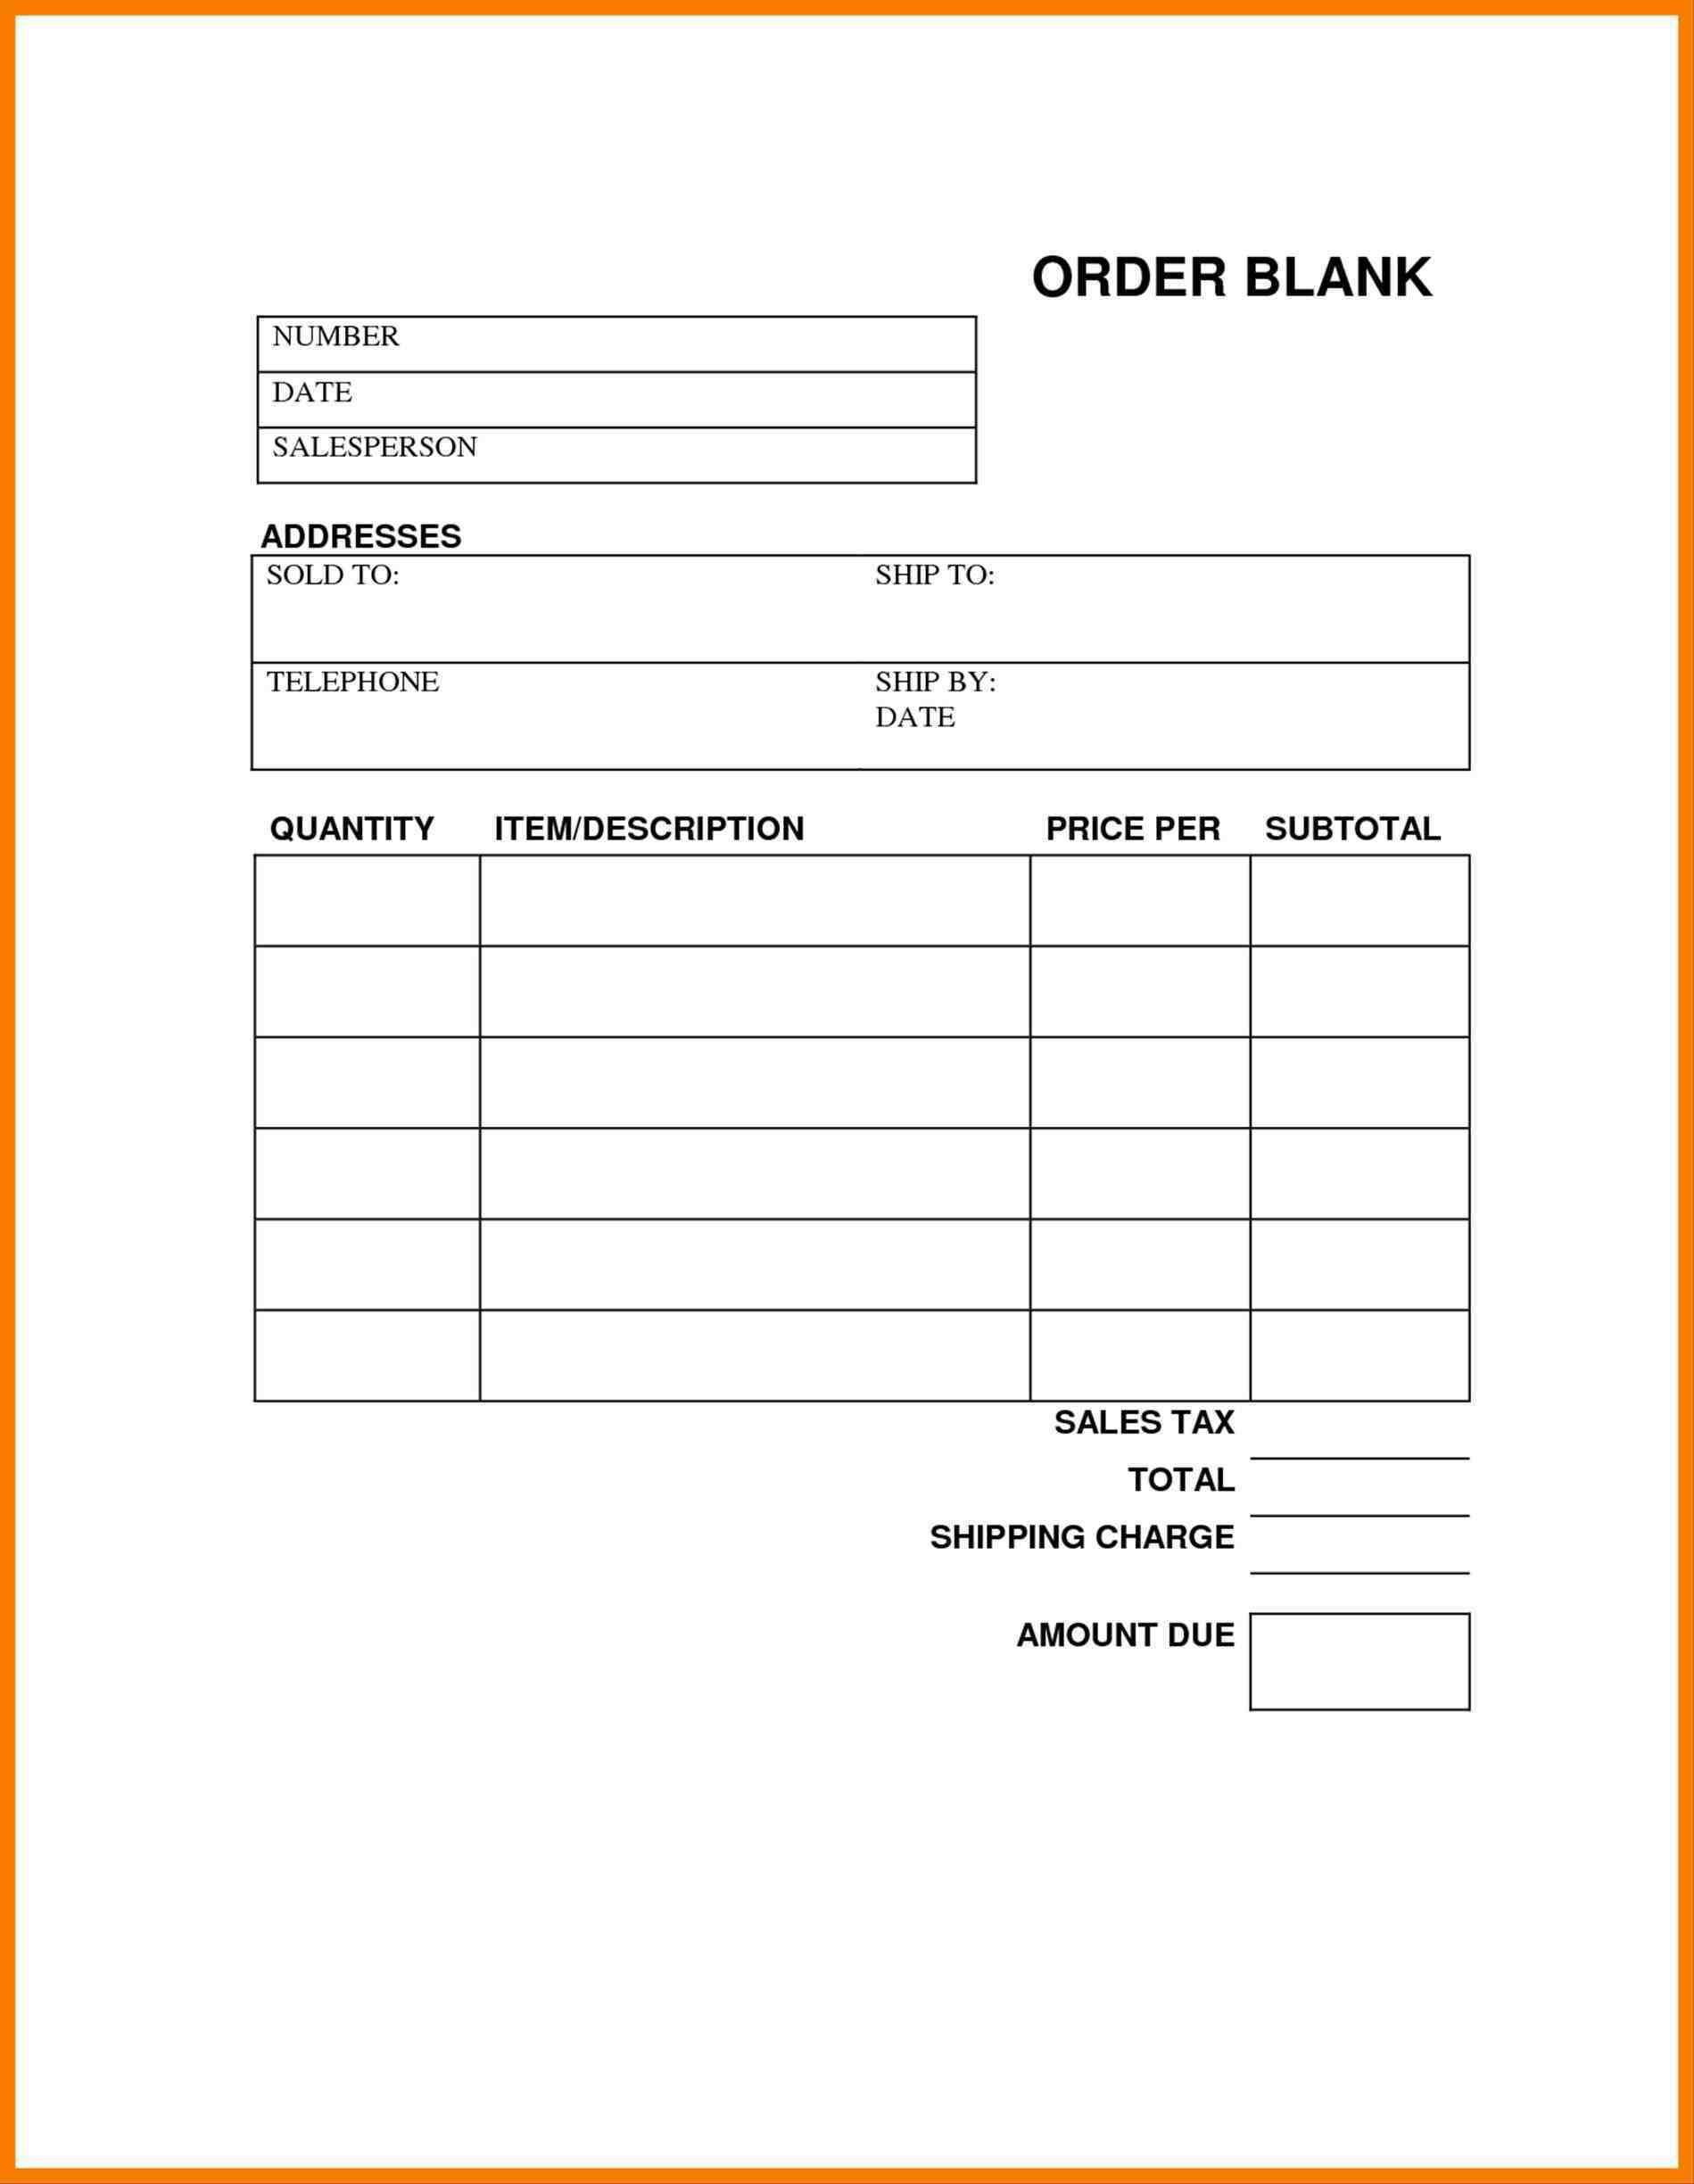 004 Awful Printable Order Form Template High Resolution  Templates Fundraiser Food CakeFull